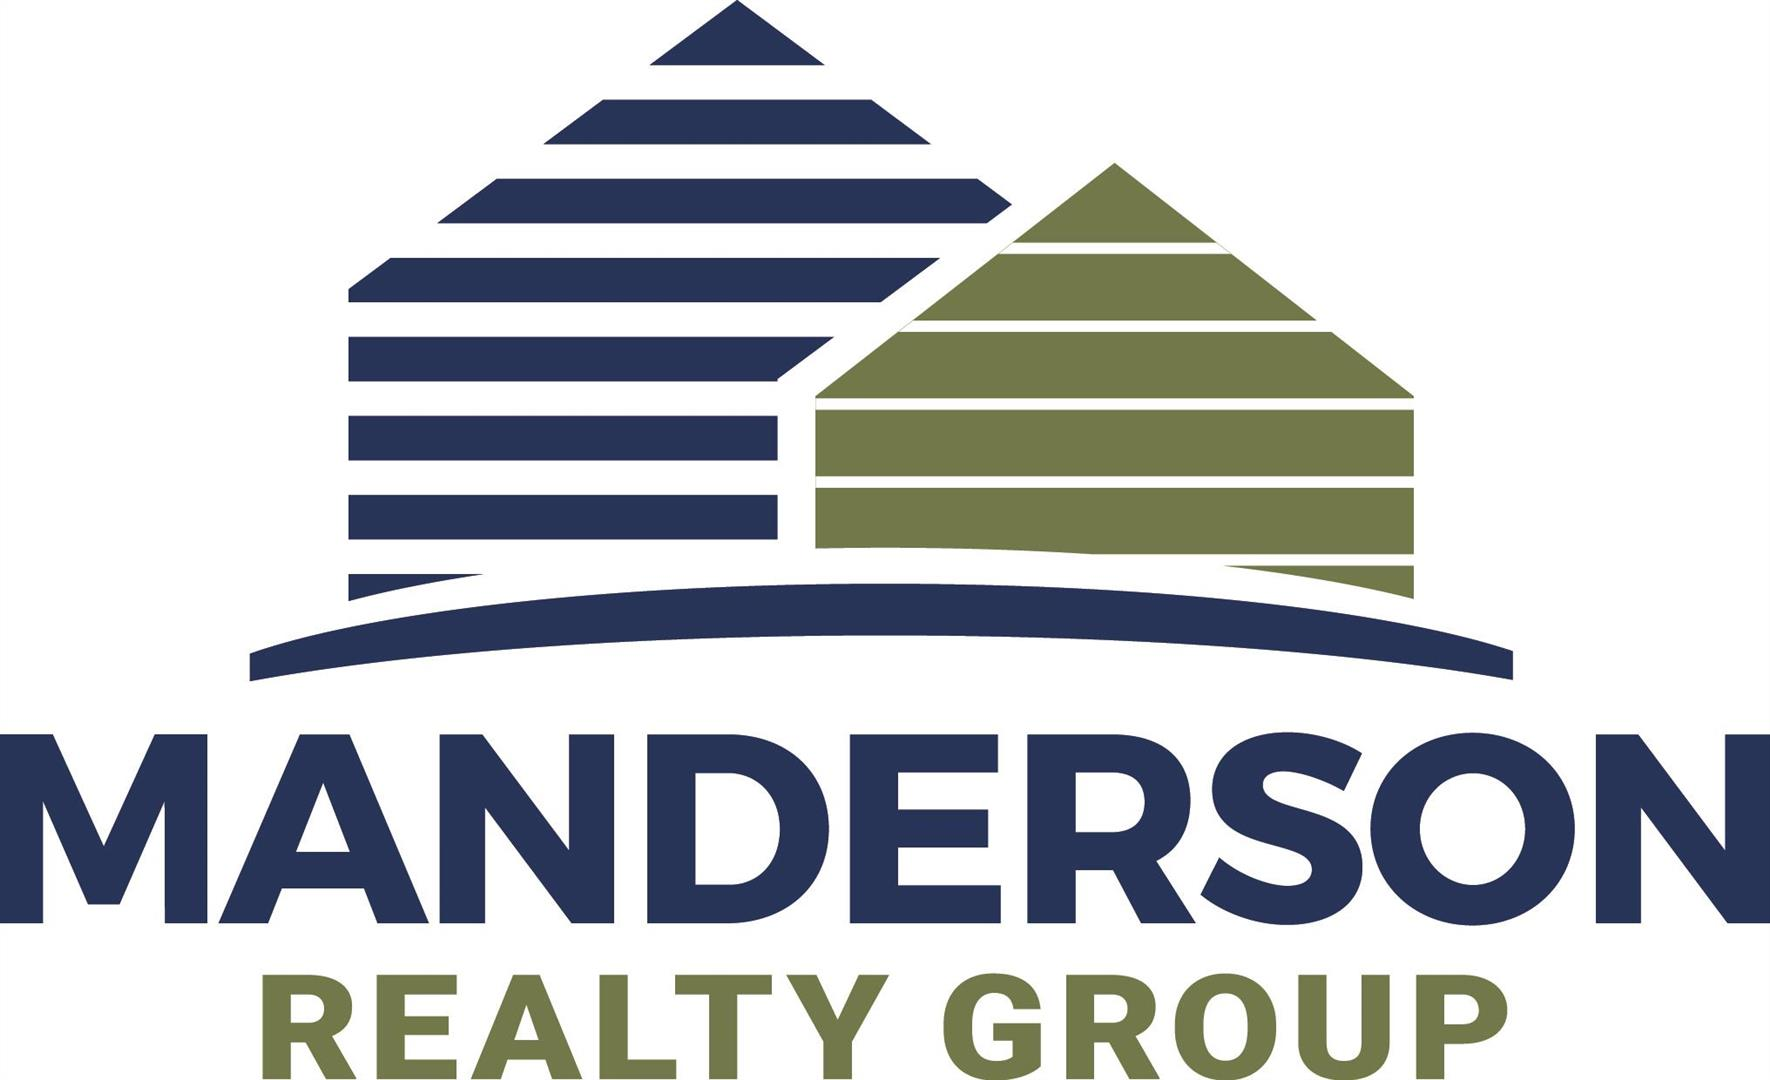 Mandersonlogo_4color.jpg